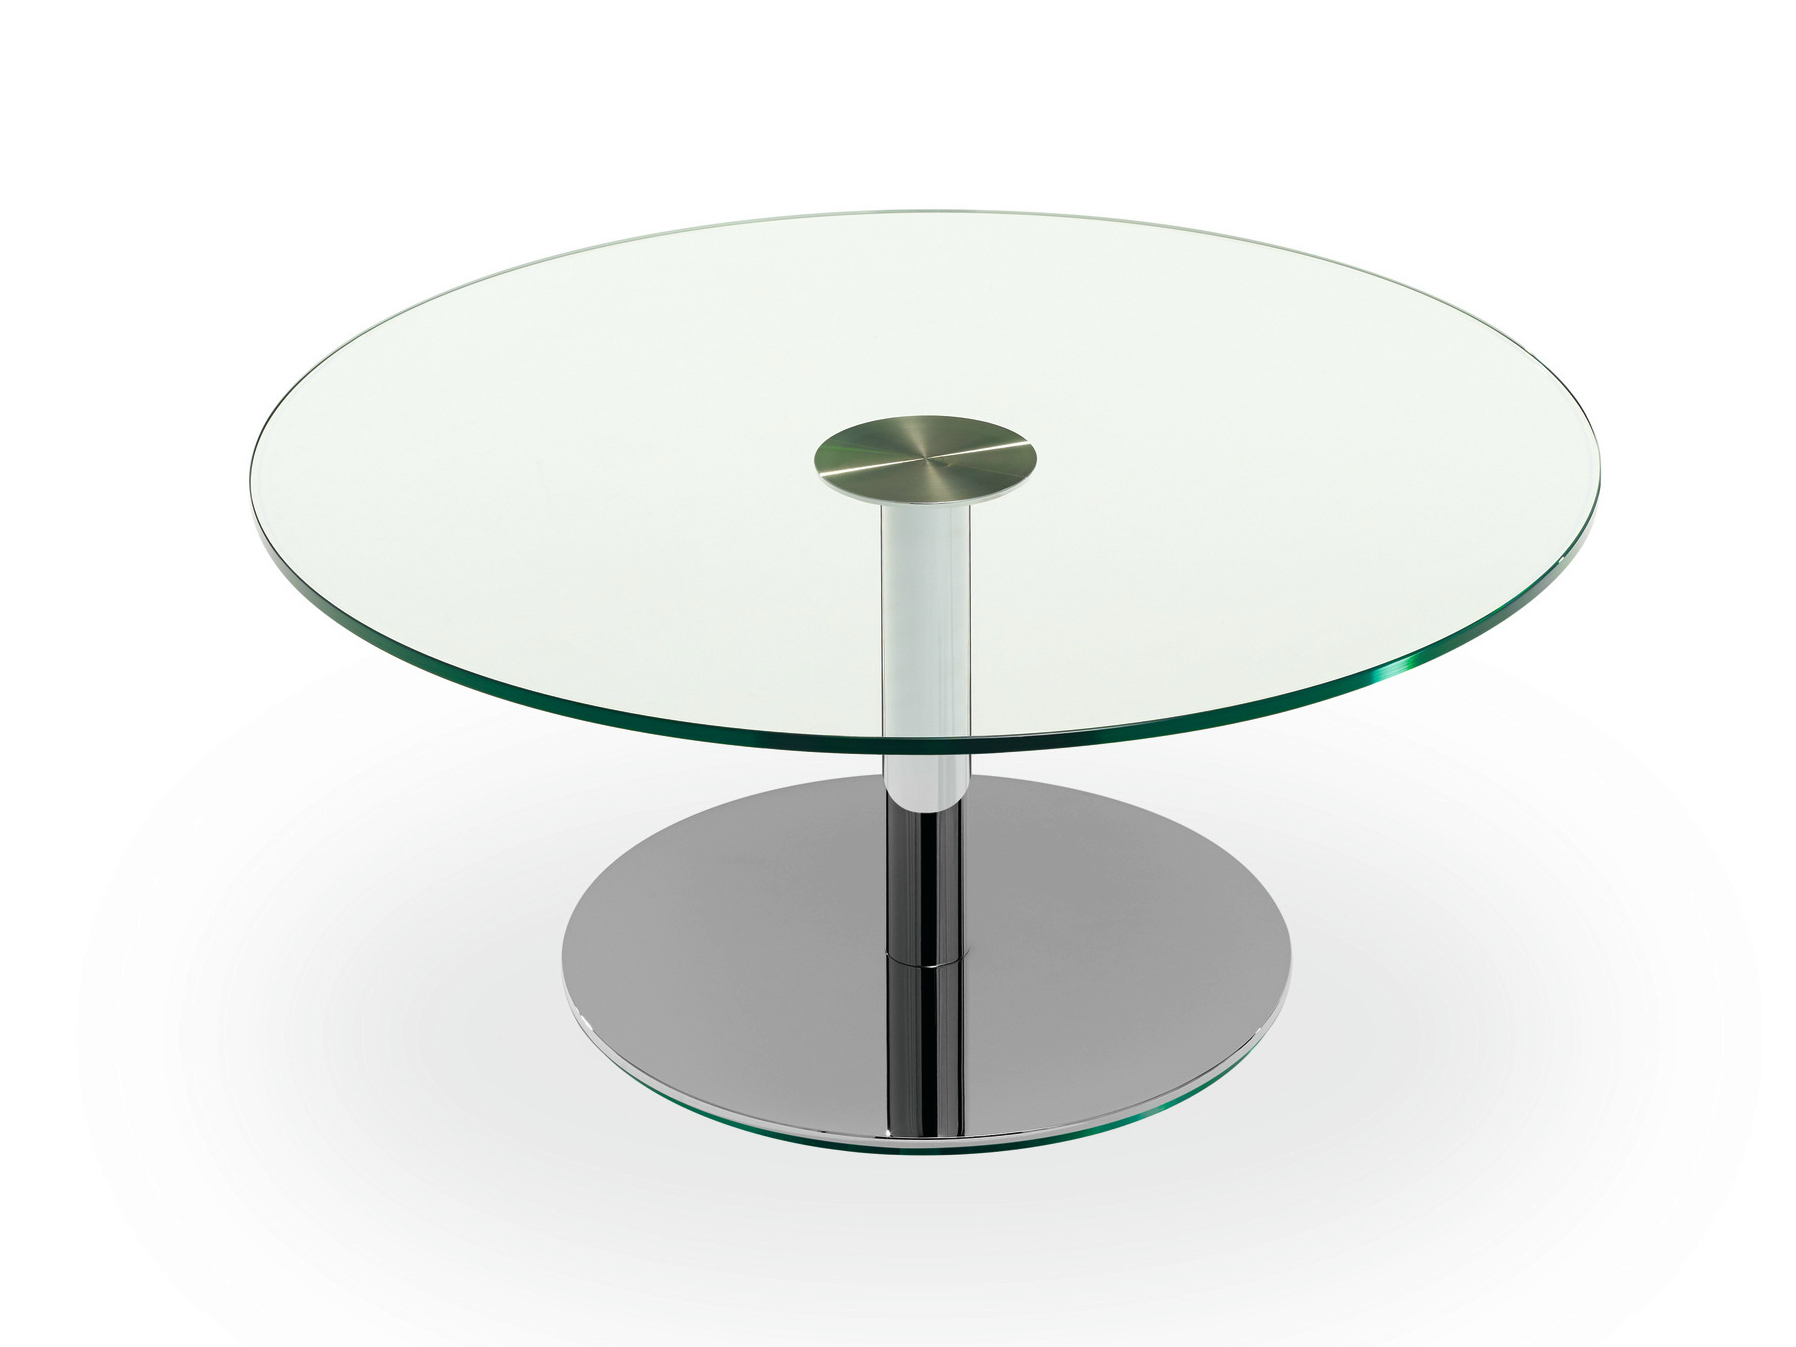 Small Glass Coffee Tables HomesFeed : Round Small Glass Coffee Tables from homesfeed.com size 1796 x 1347 jpeg 338kB